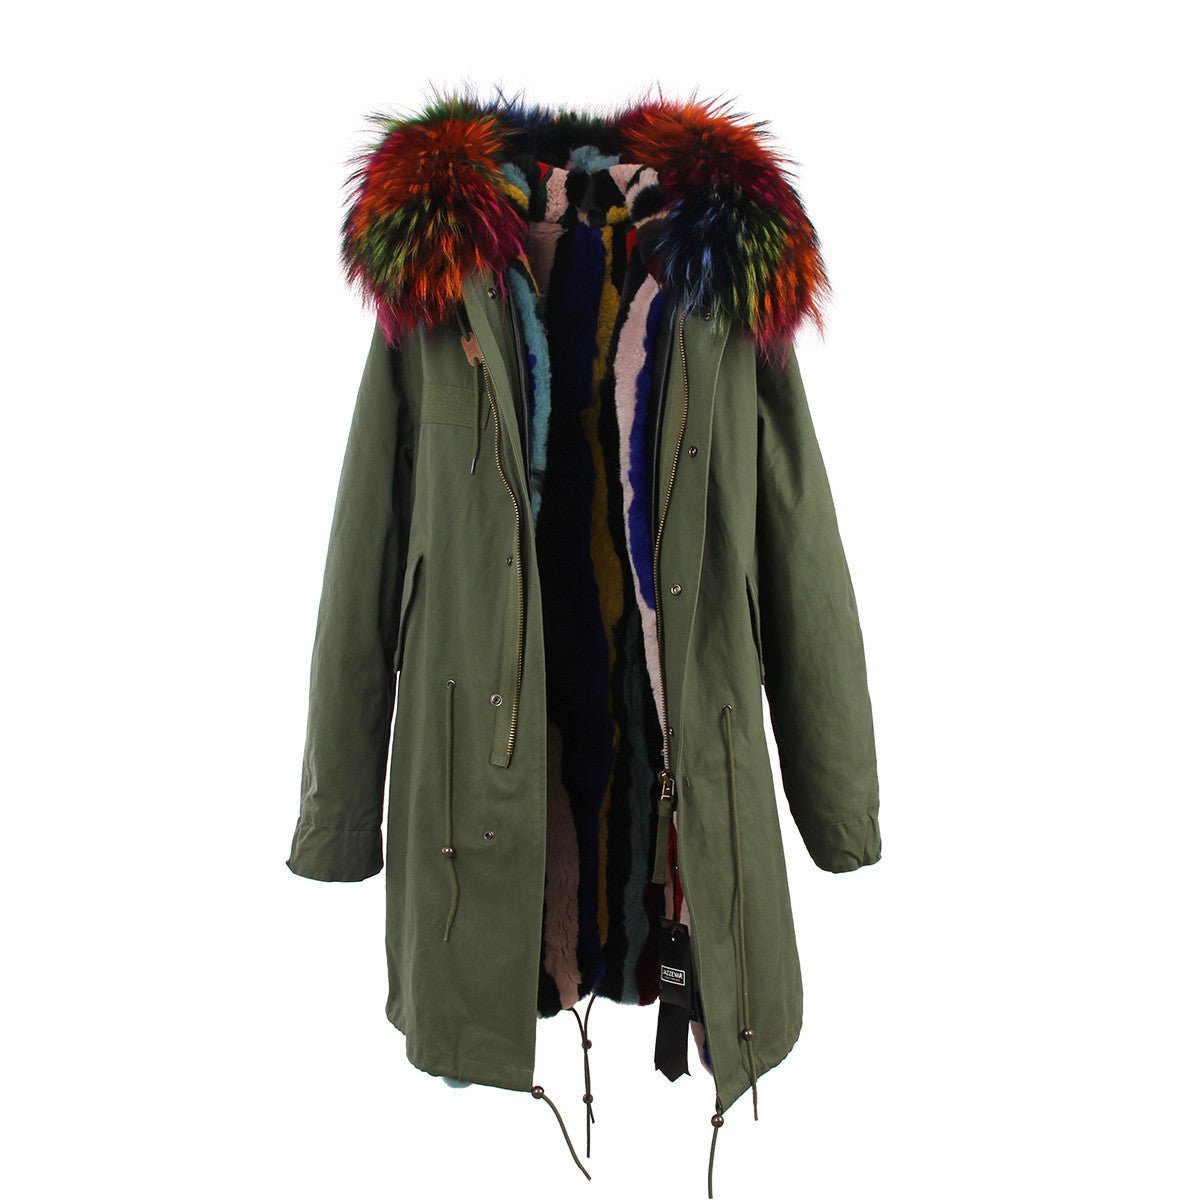 Fashion Women Raccoon Rabbit Fur Coat - All In One Place With Us - 17